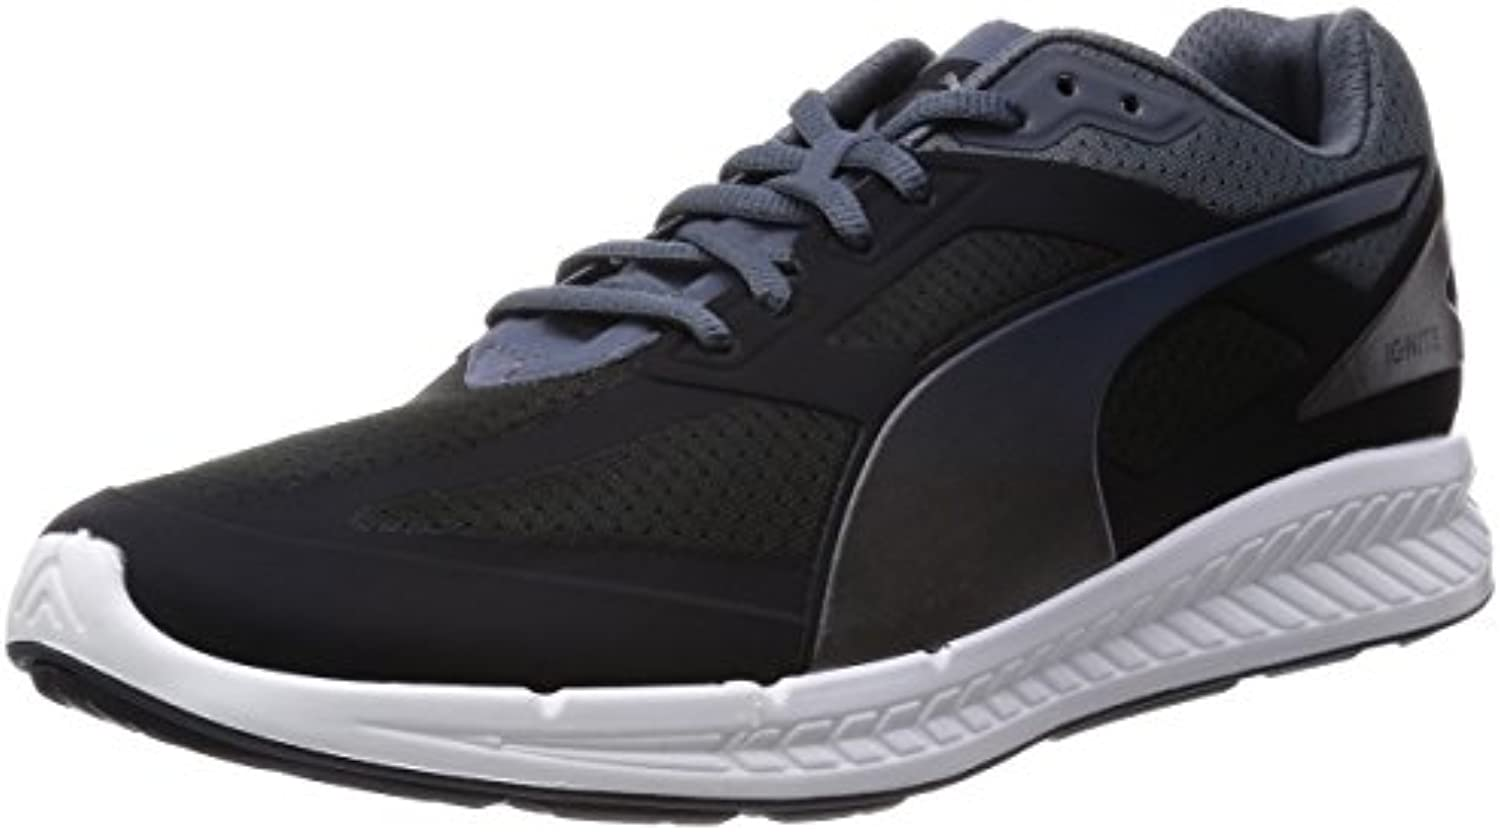 Puma Ignite Men Running Shoes Fitness Jogging 188041 01 Lila, Tamaño de Zapato:EUR 42